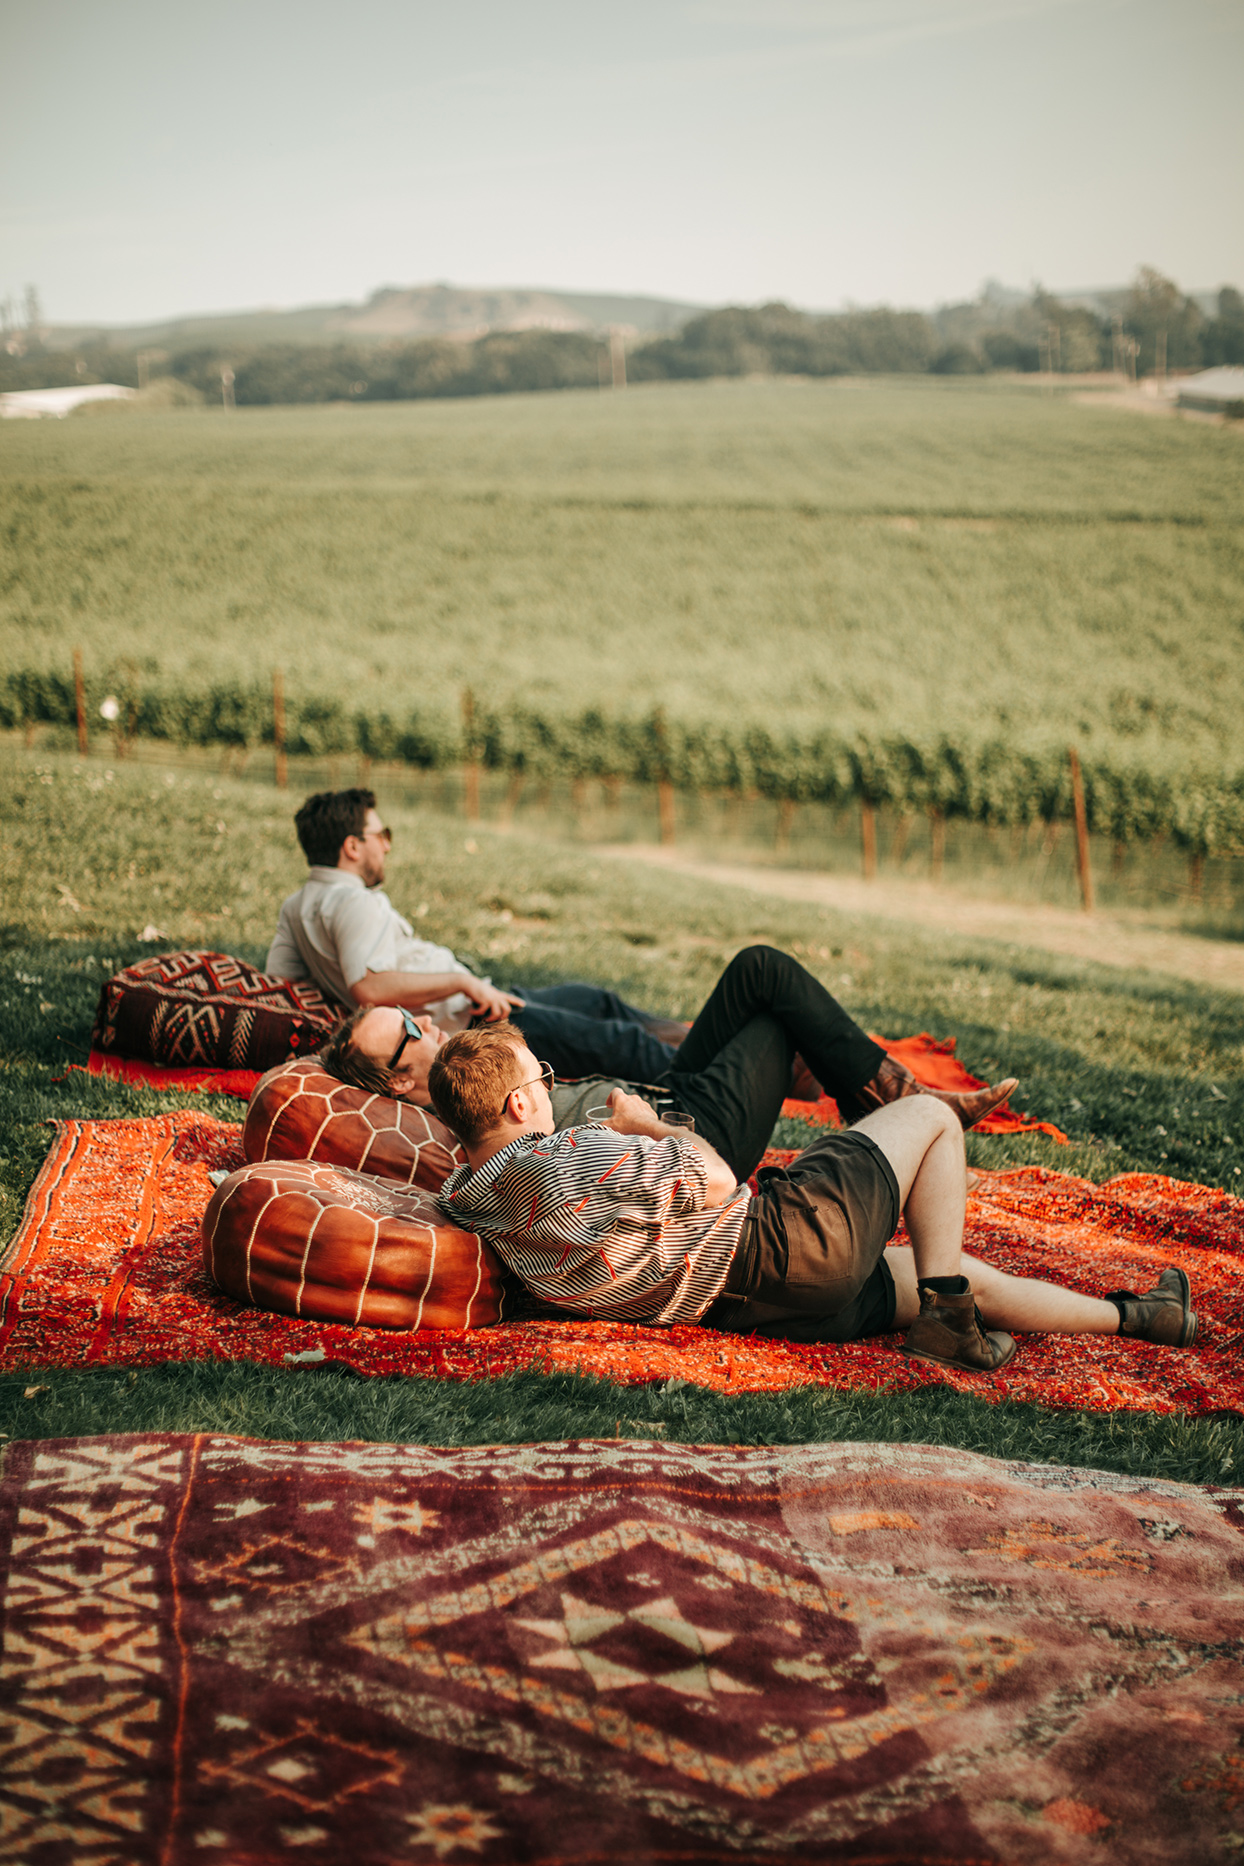 austin alex wedding guests lounging on Moroccan rugs